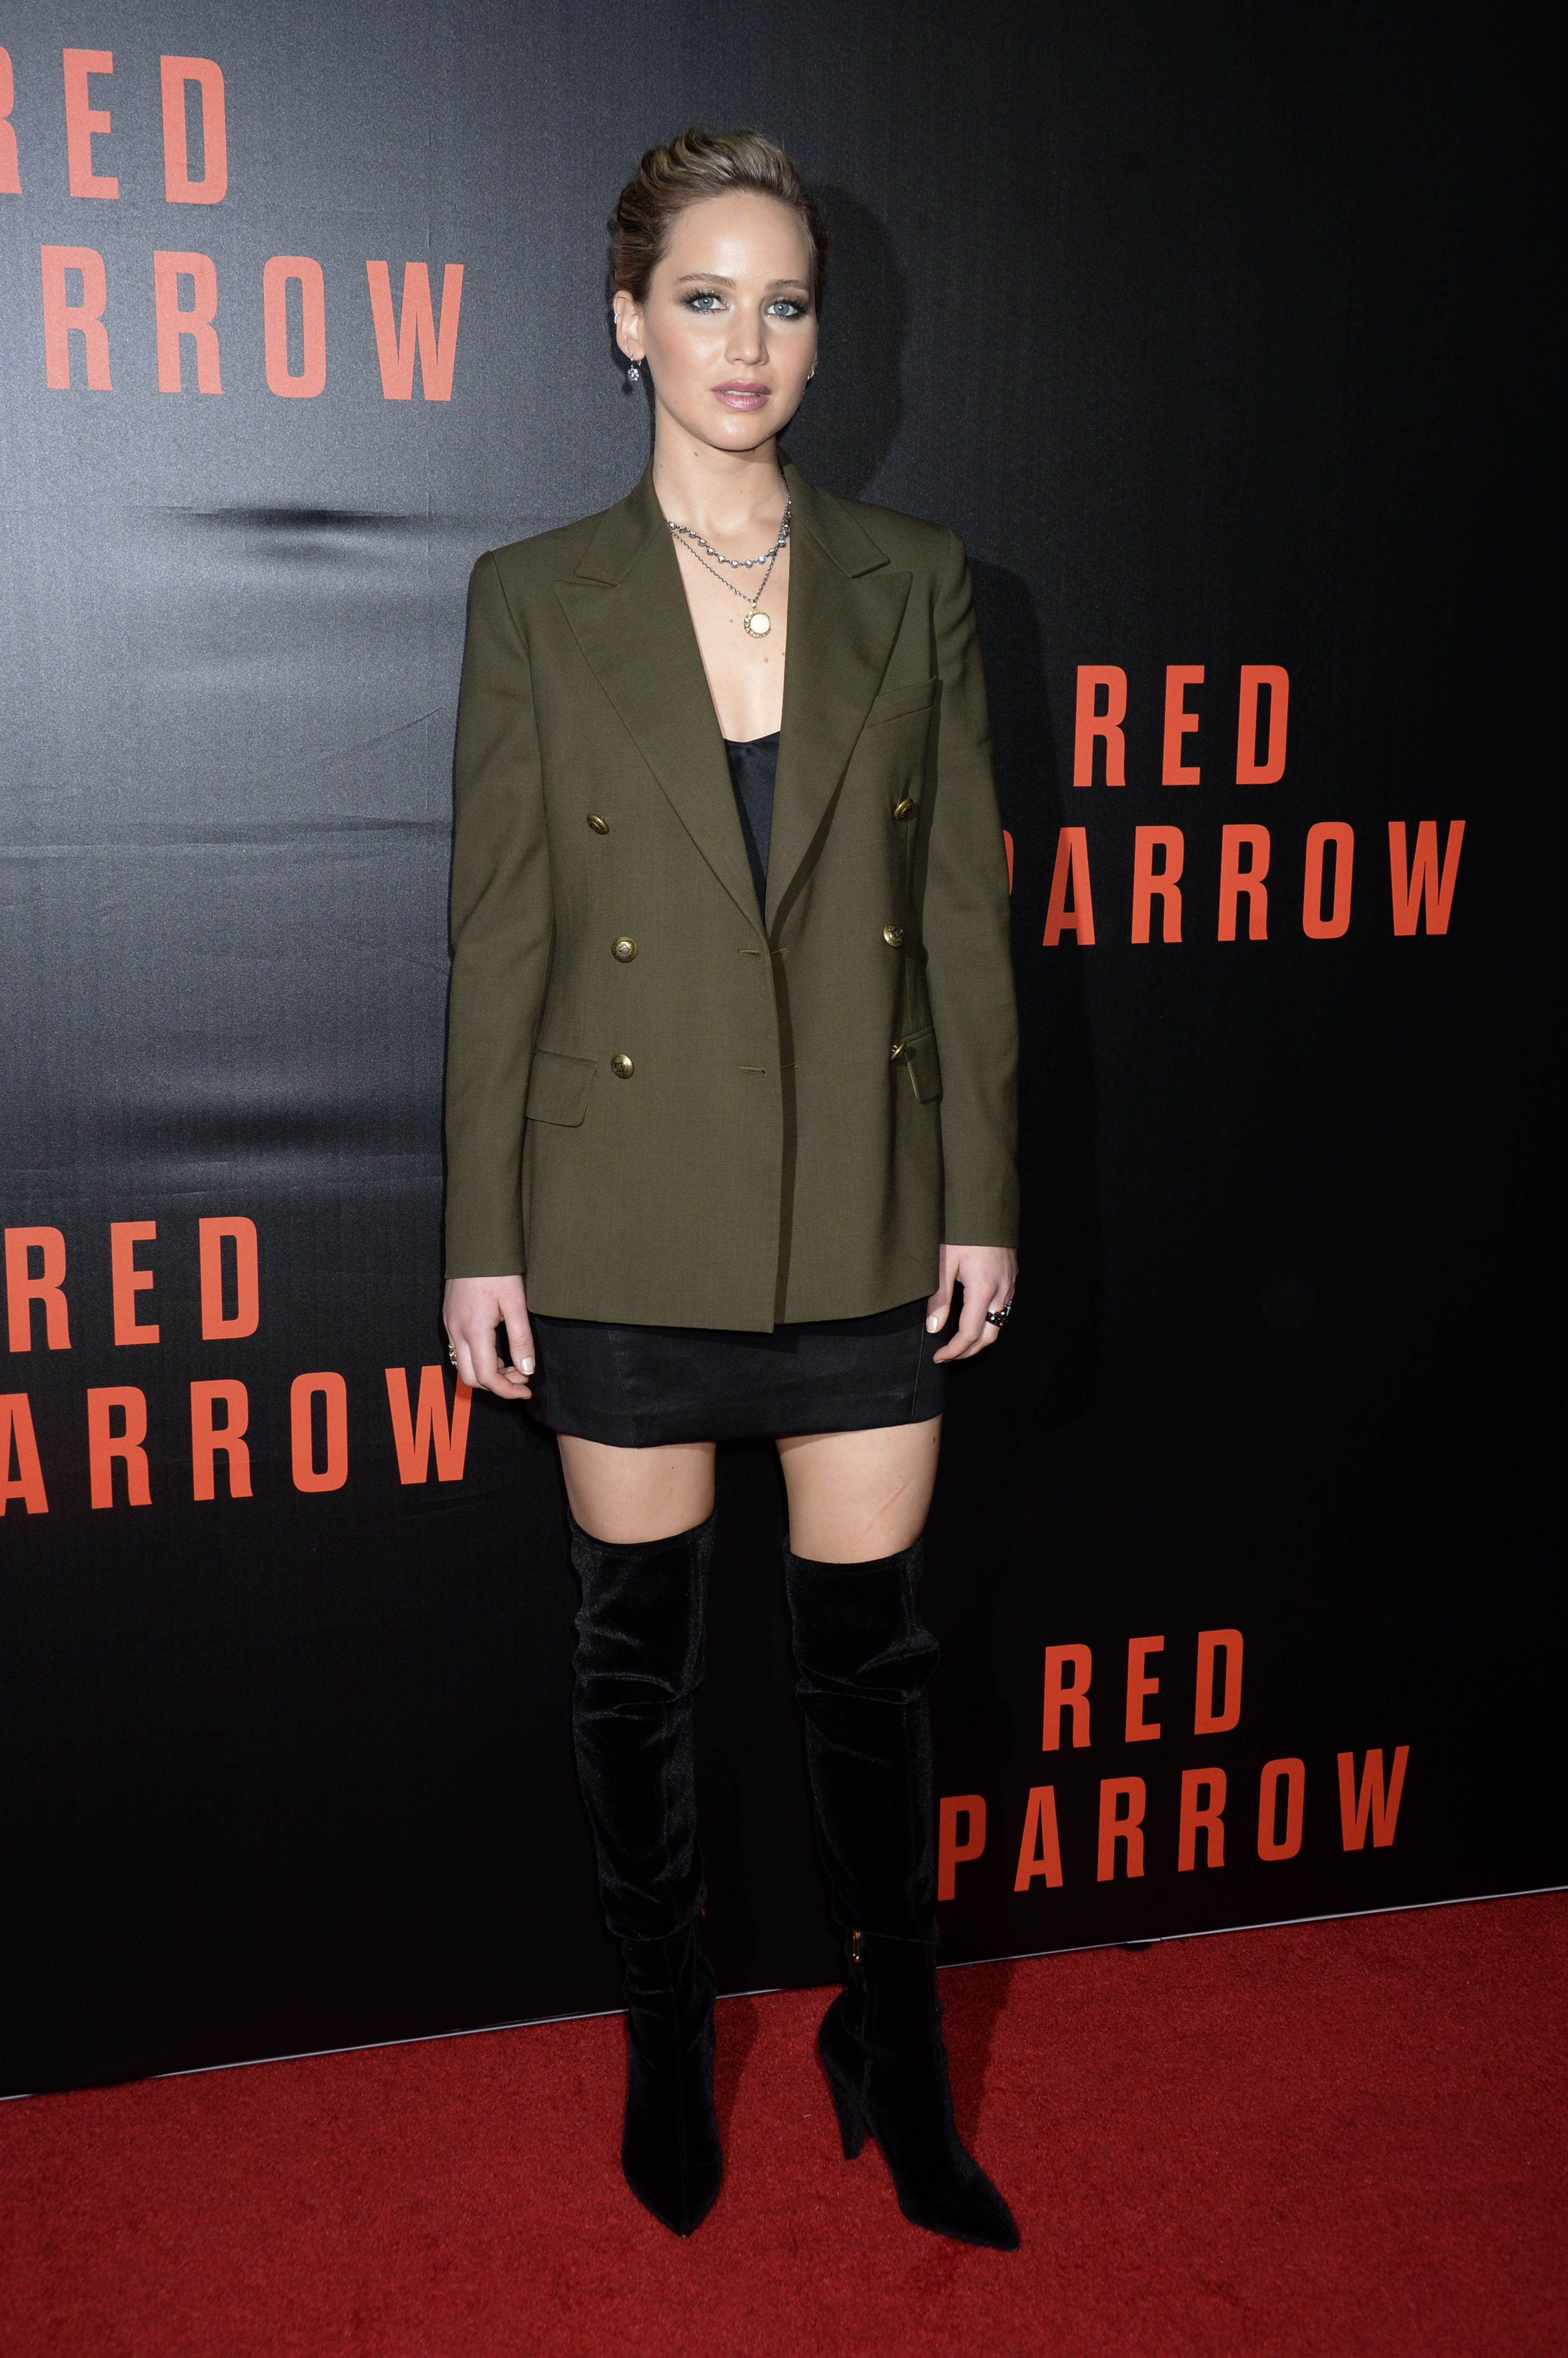 cea2e83b8 JLaw opted for a Polo Ralph Lauren menswear-inspired olive blazer paired  with black velvet